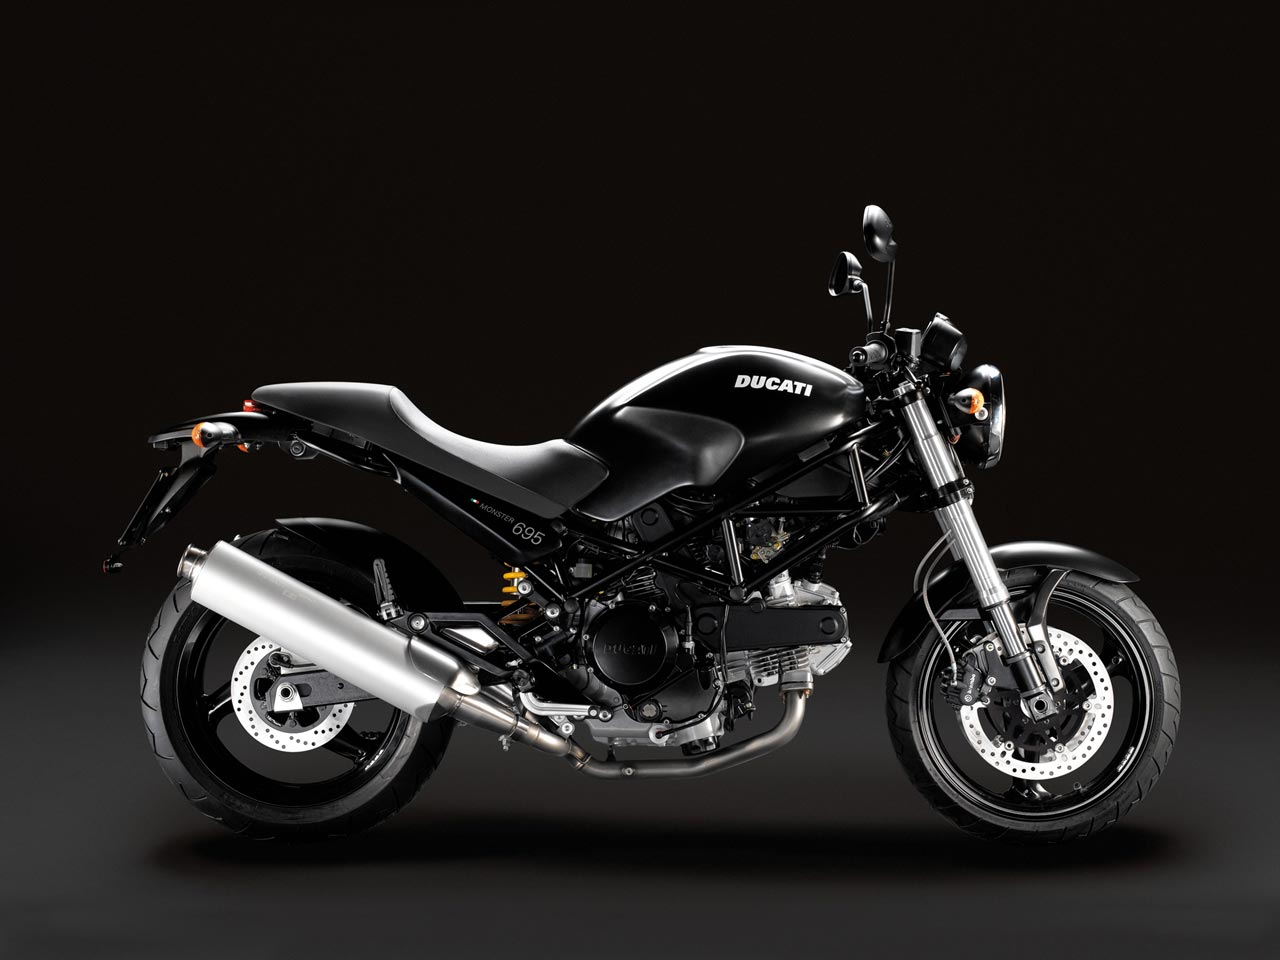 Ducati M 750 Dark wallpapers #12746